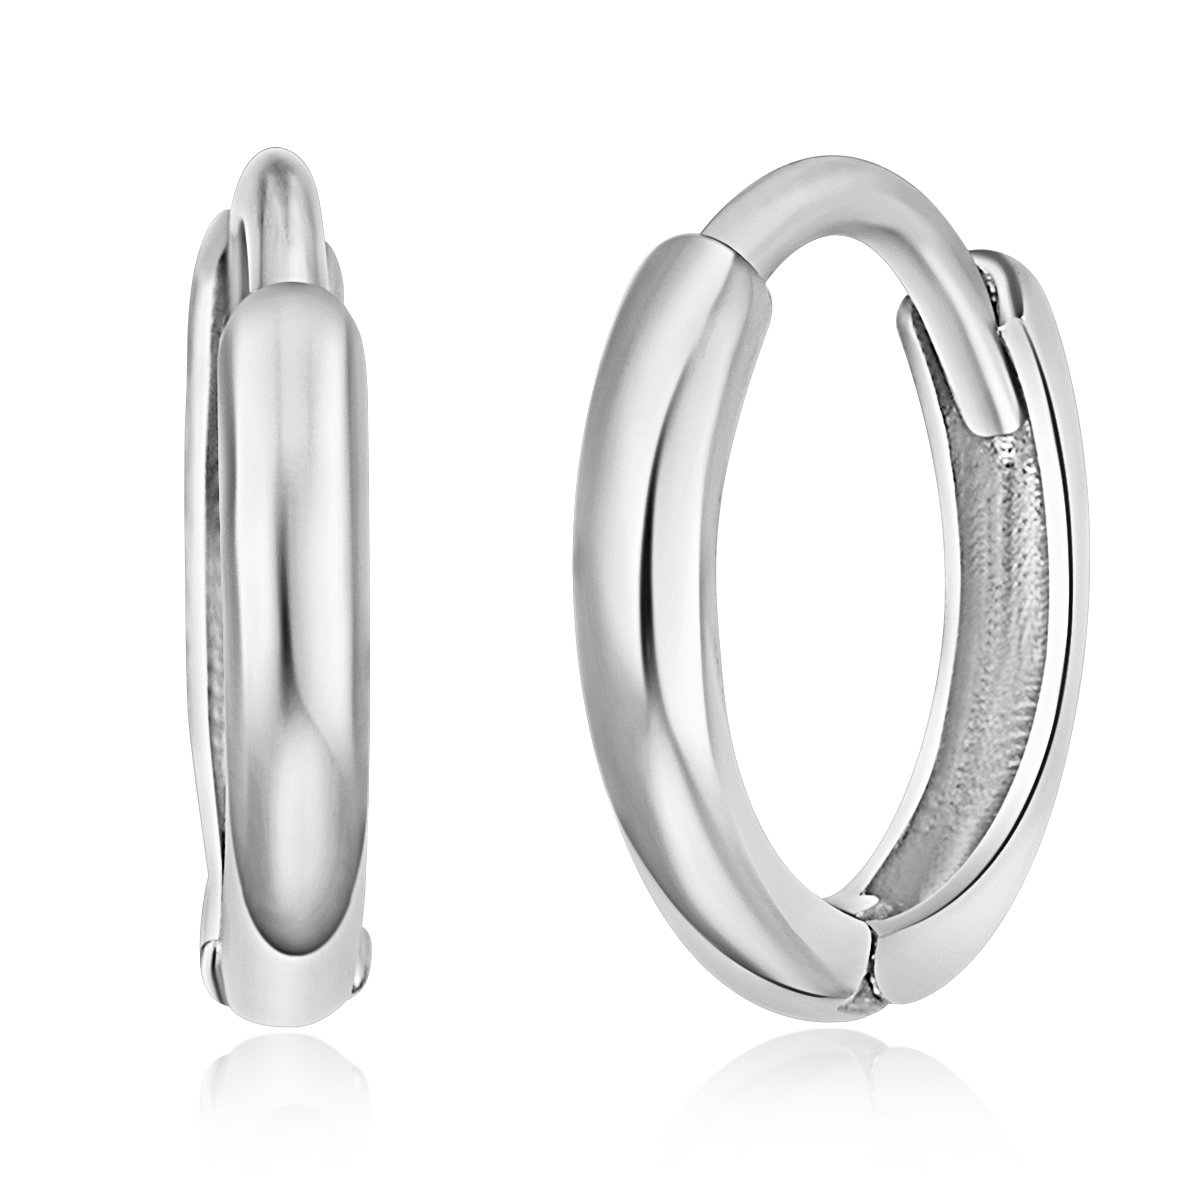 14k White Gold 1.5mm Thickness Huggie Earrings (8 x 8 mm) by GoldenMine Fine Earrings